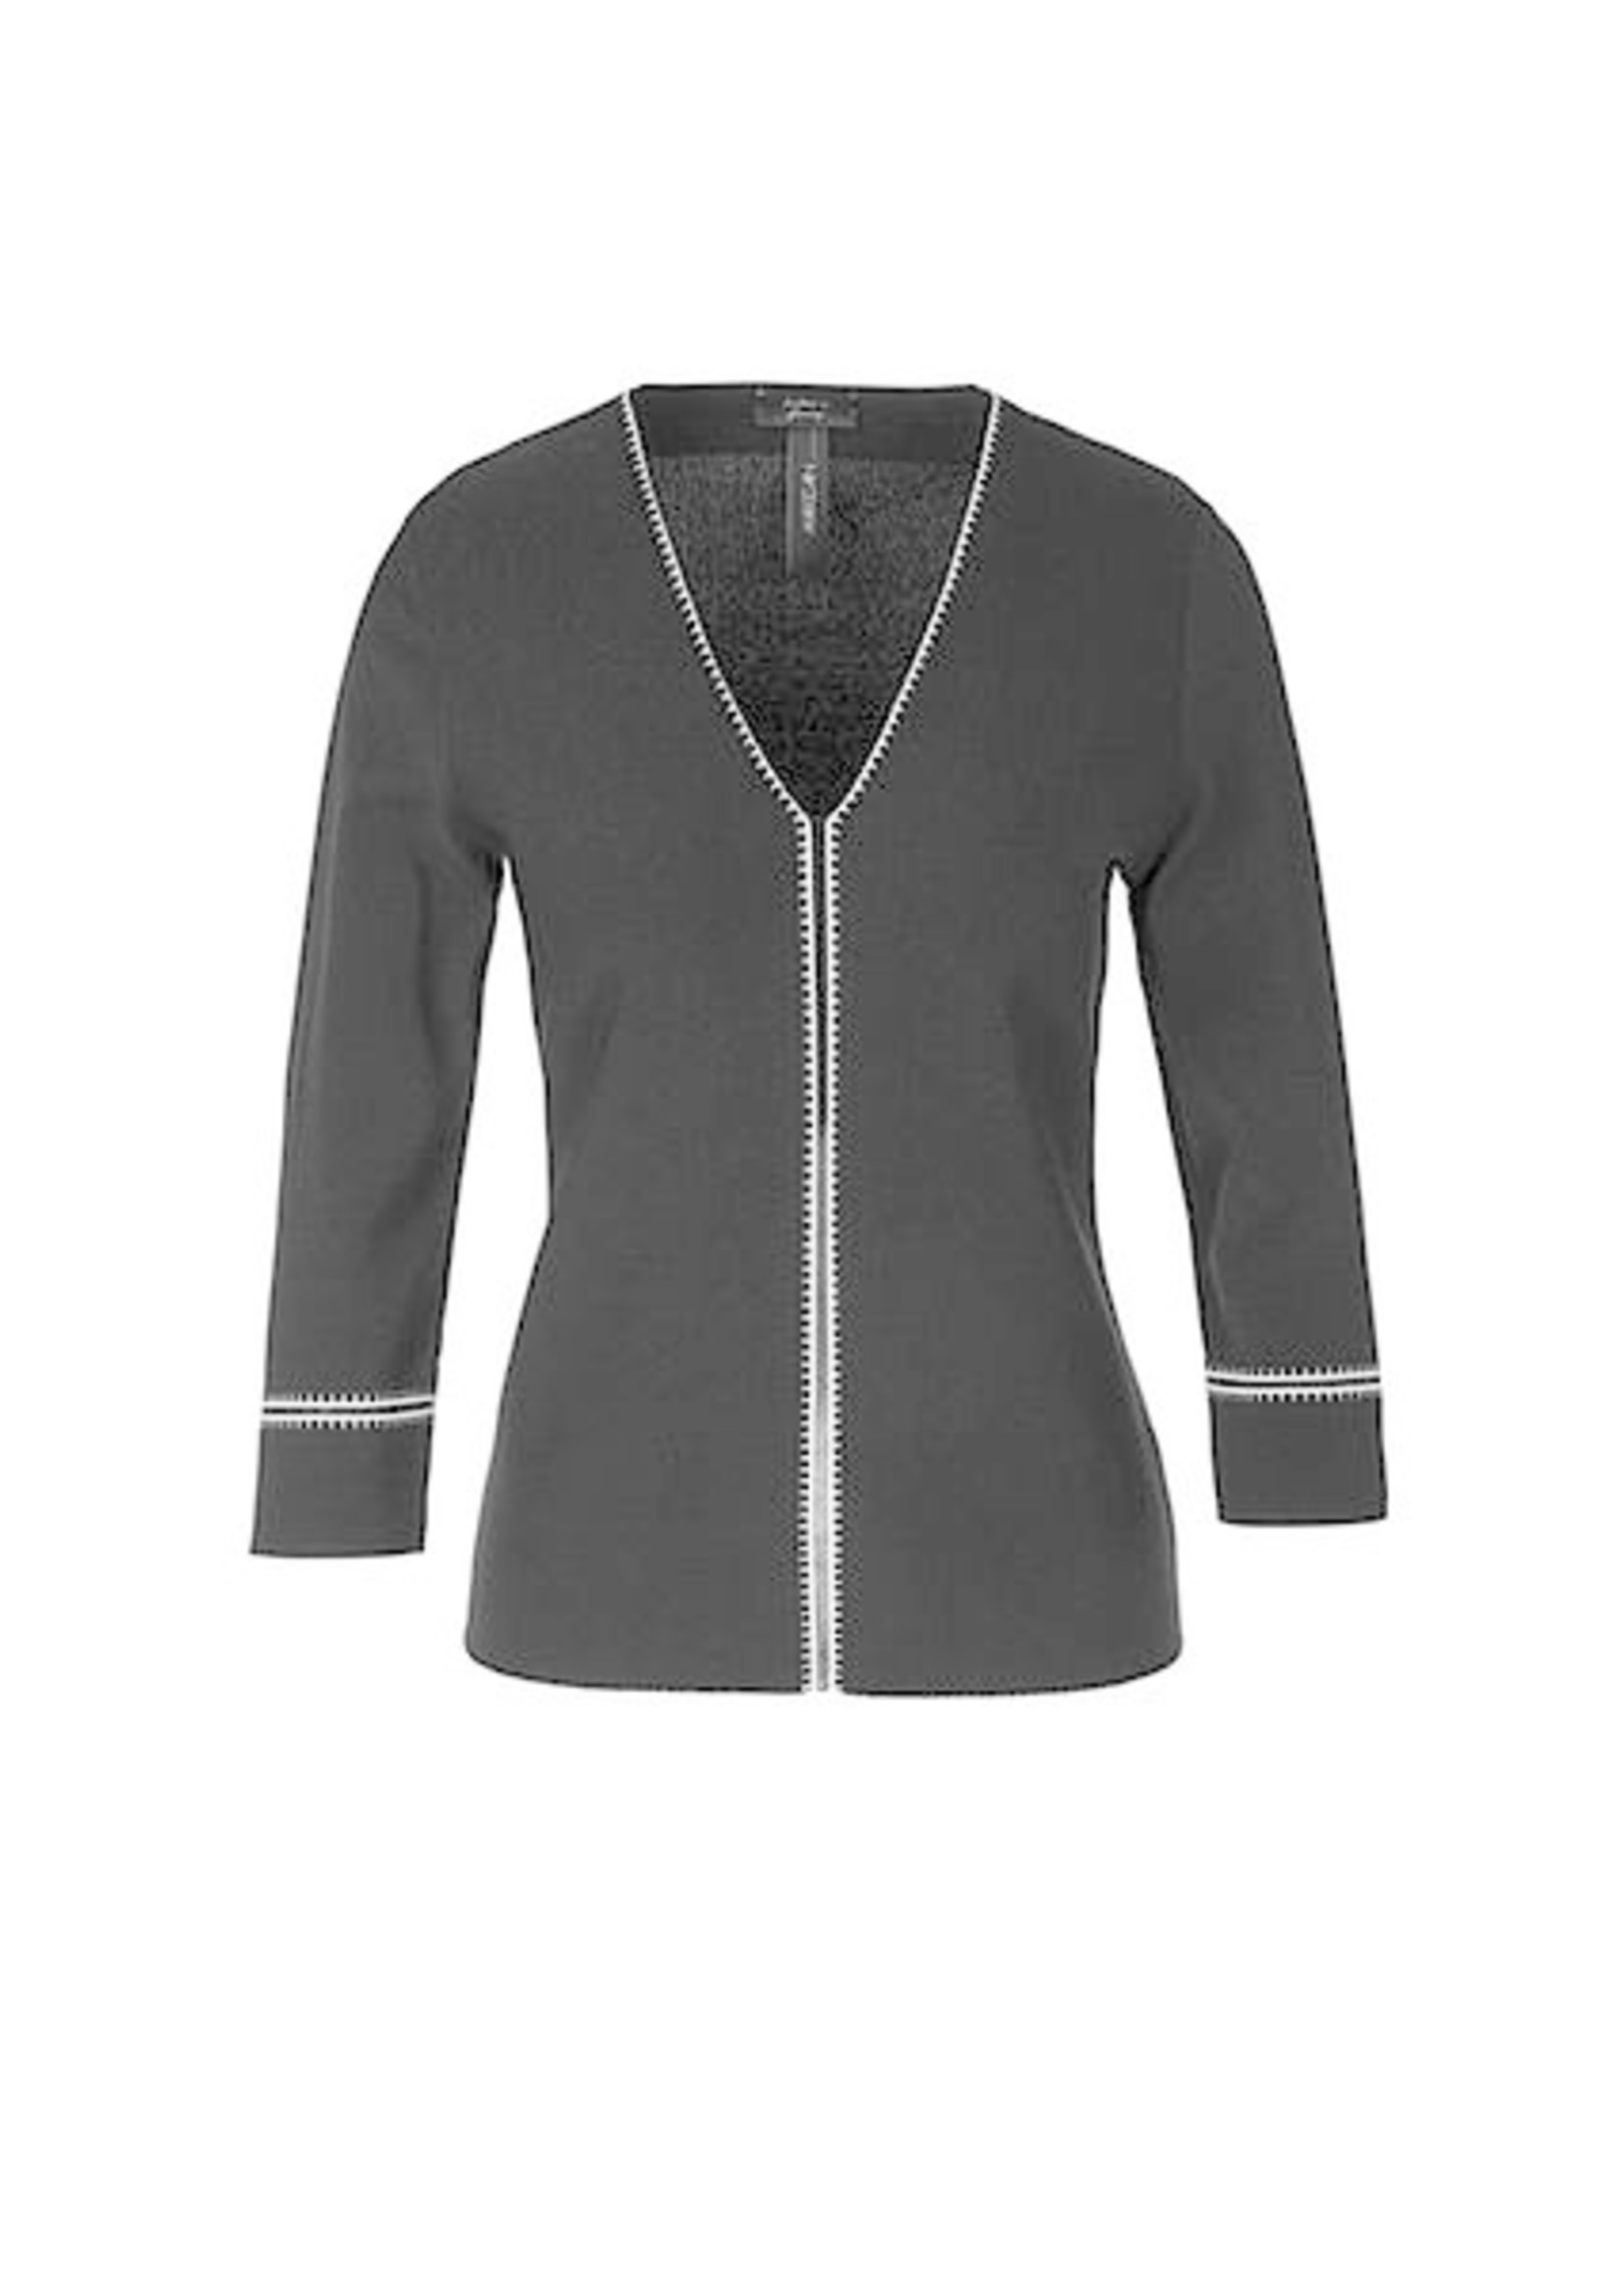 Sweater RC 41.19 M20 black and white